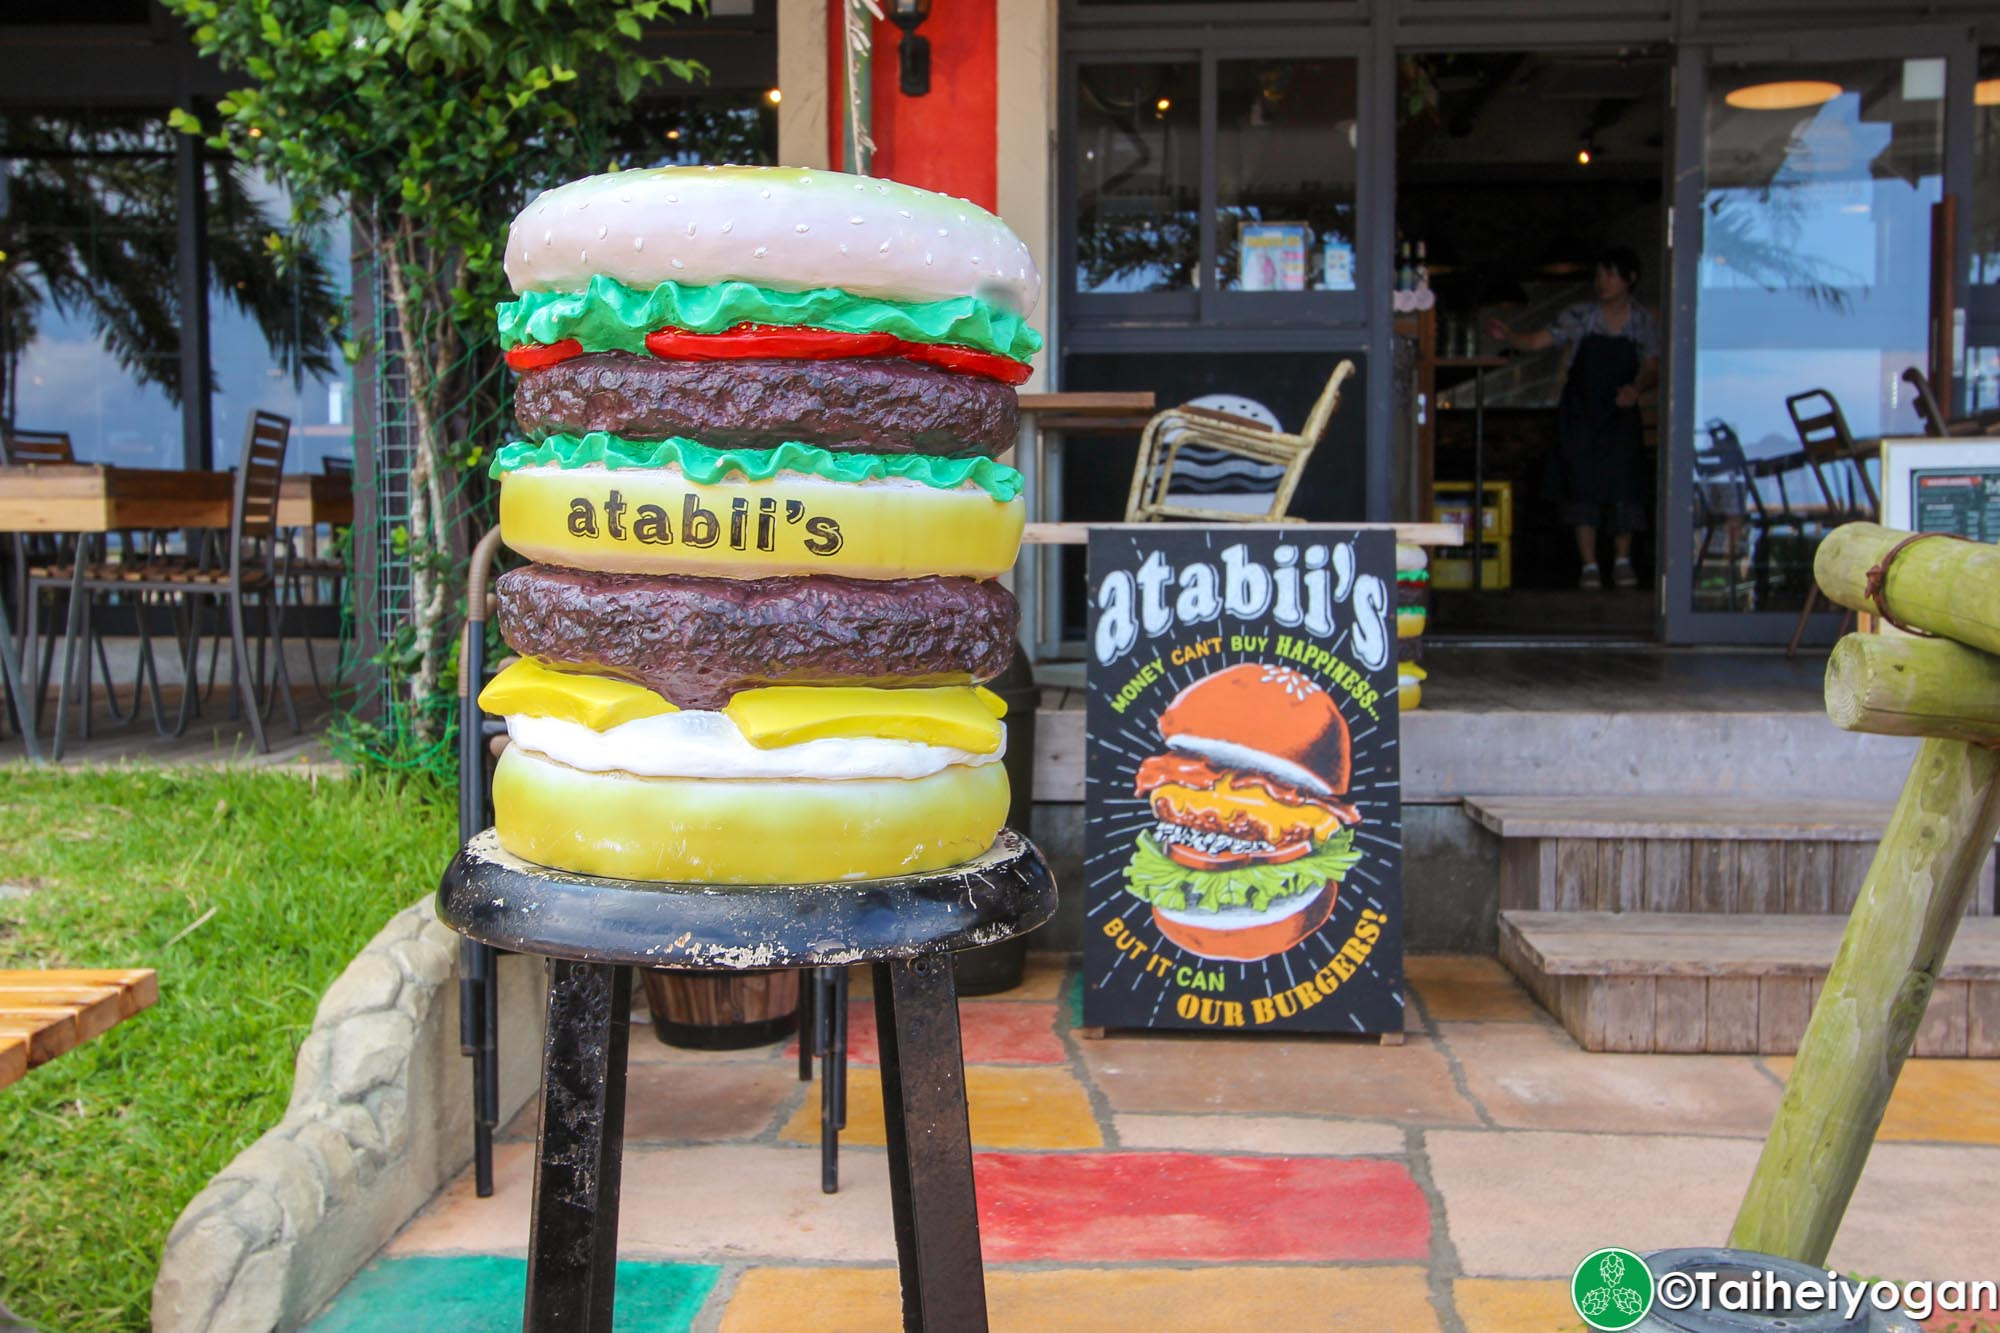 Chatan Burger Base Atabii's - Sign